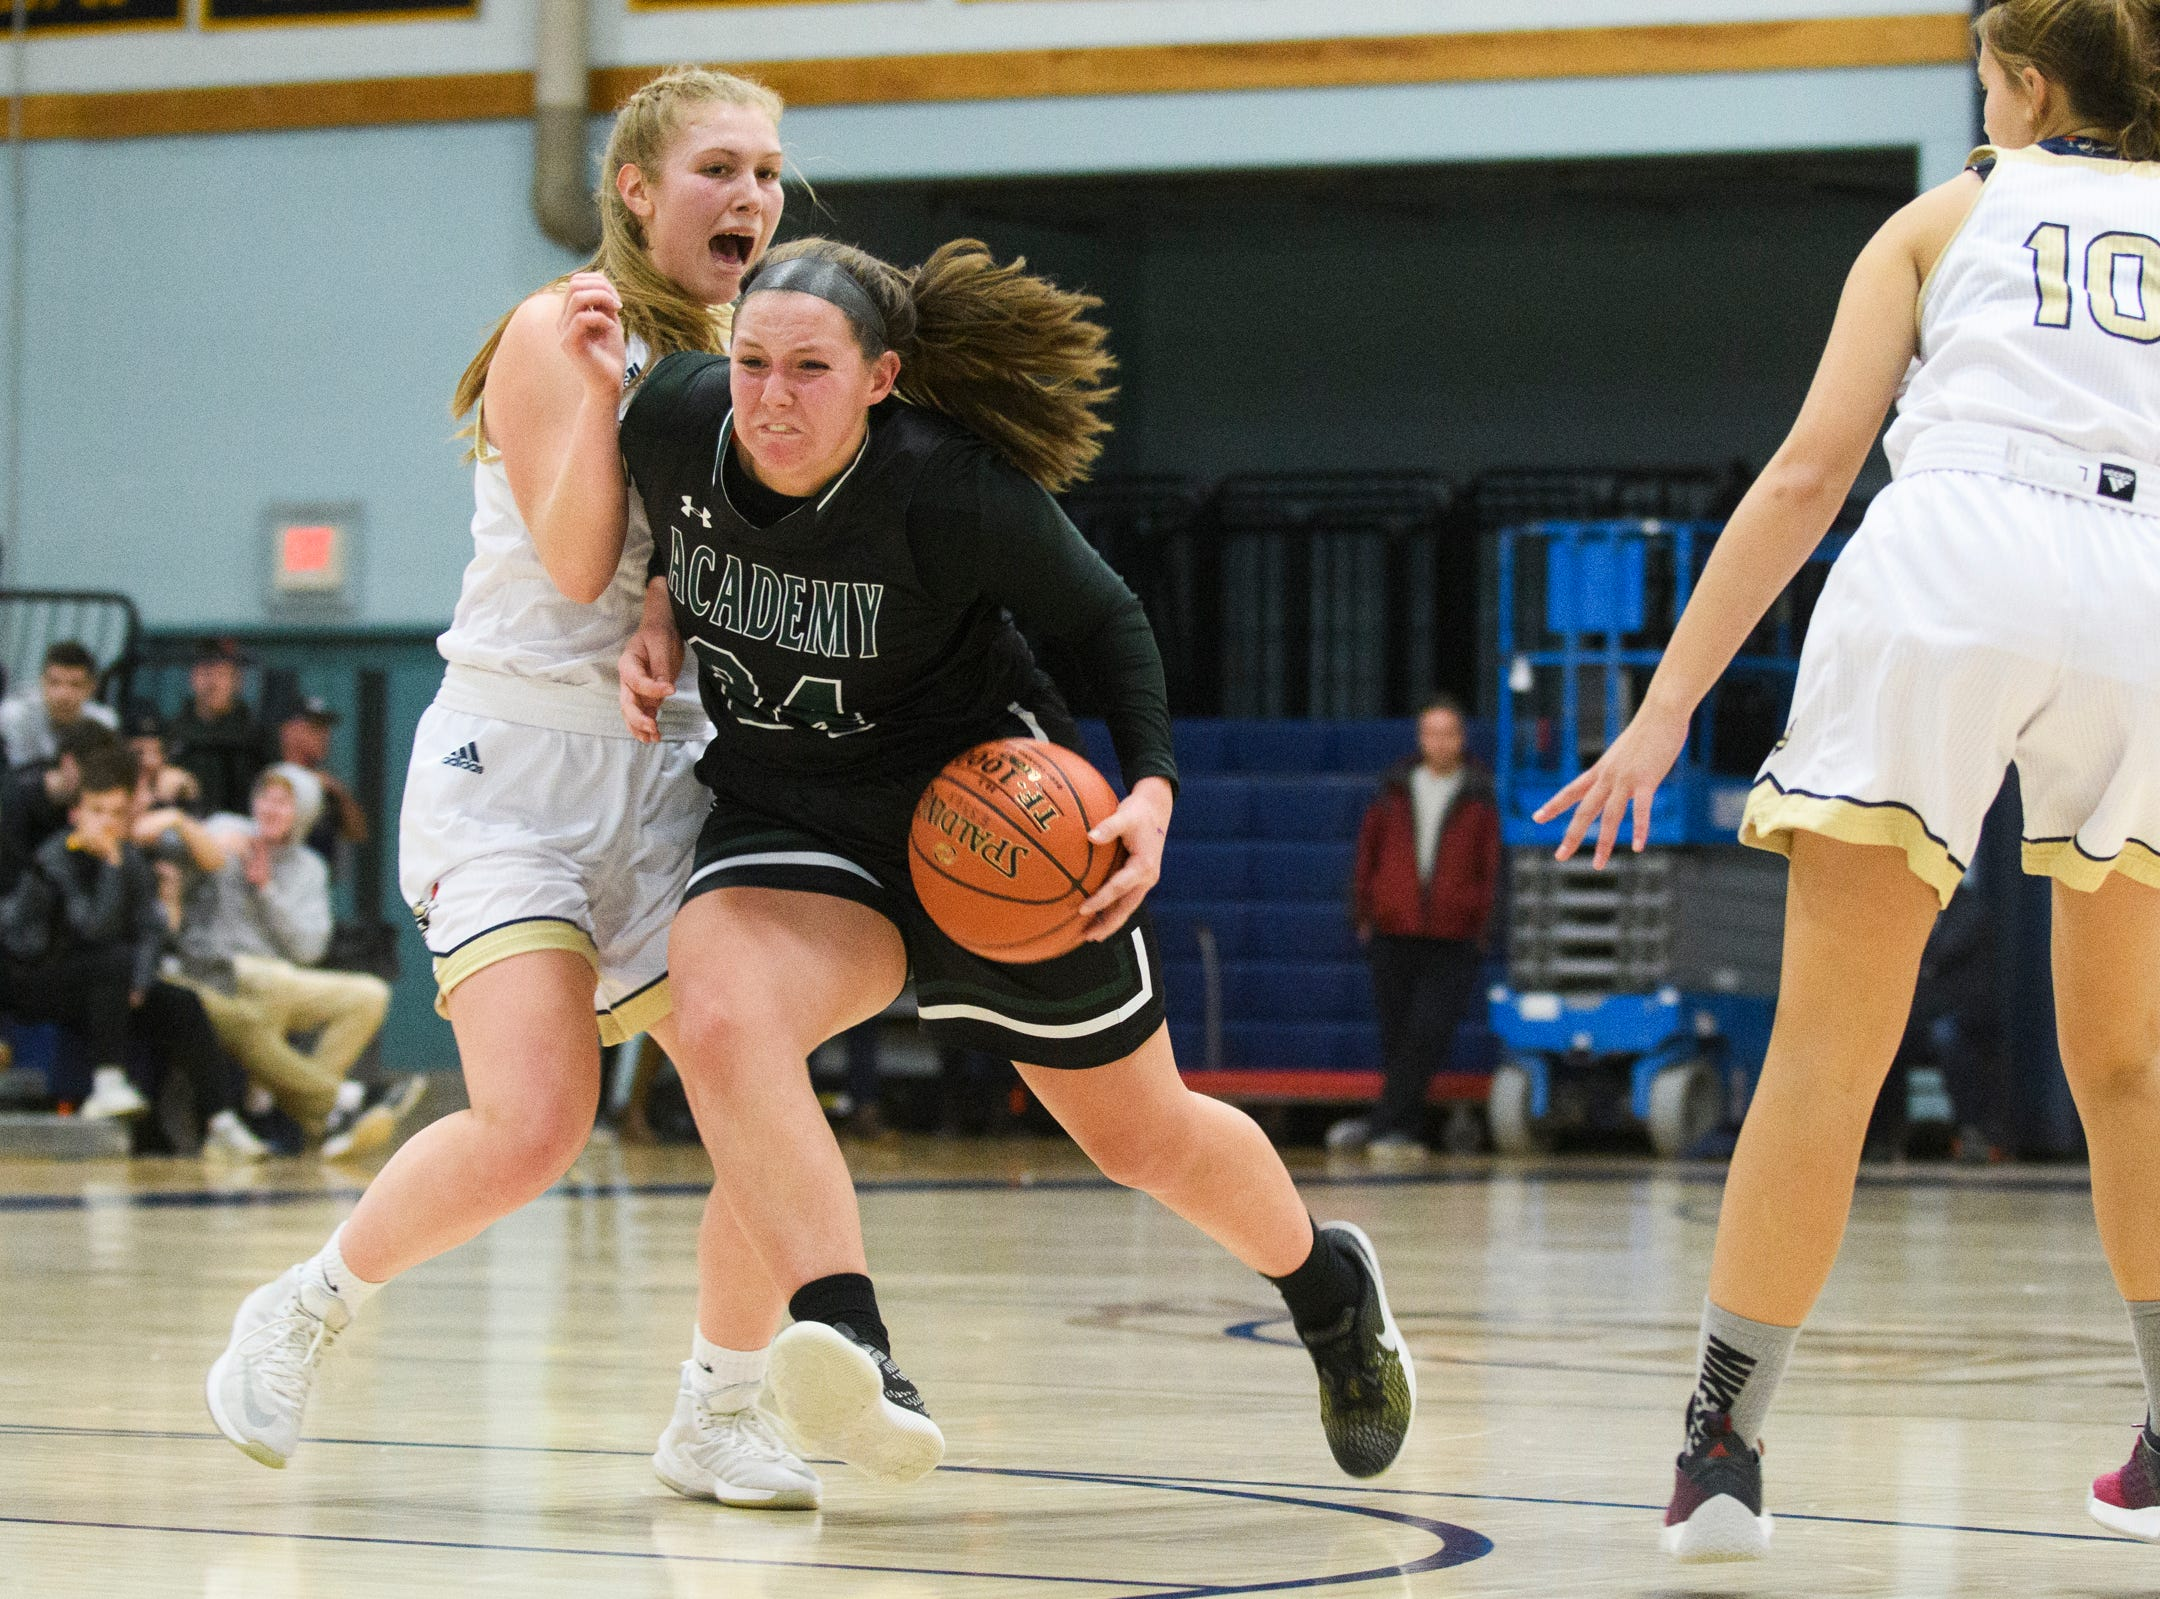 St. Johnsbury's Josie Choiniere (34) drives to the hoop during the girls basketball game between the St. Johnsbury Hilltoppers and the Essex Hornets at Essex High School on Thursday night January 17, 2019 in Essex.